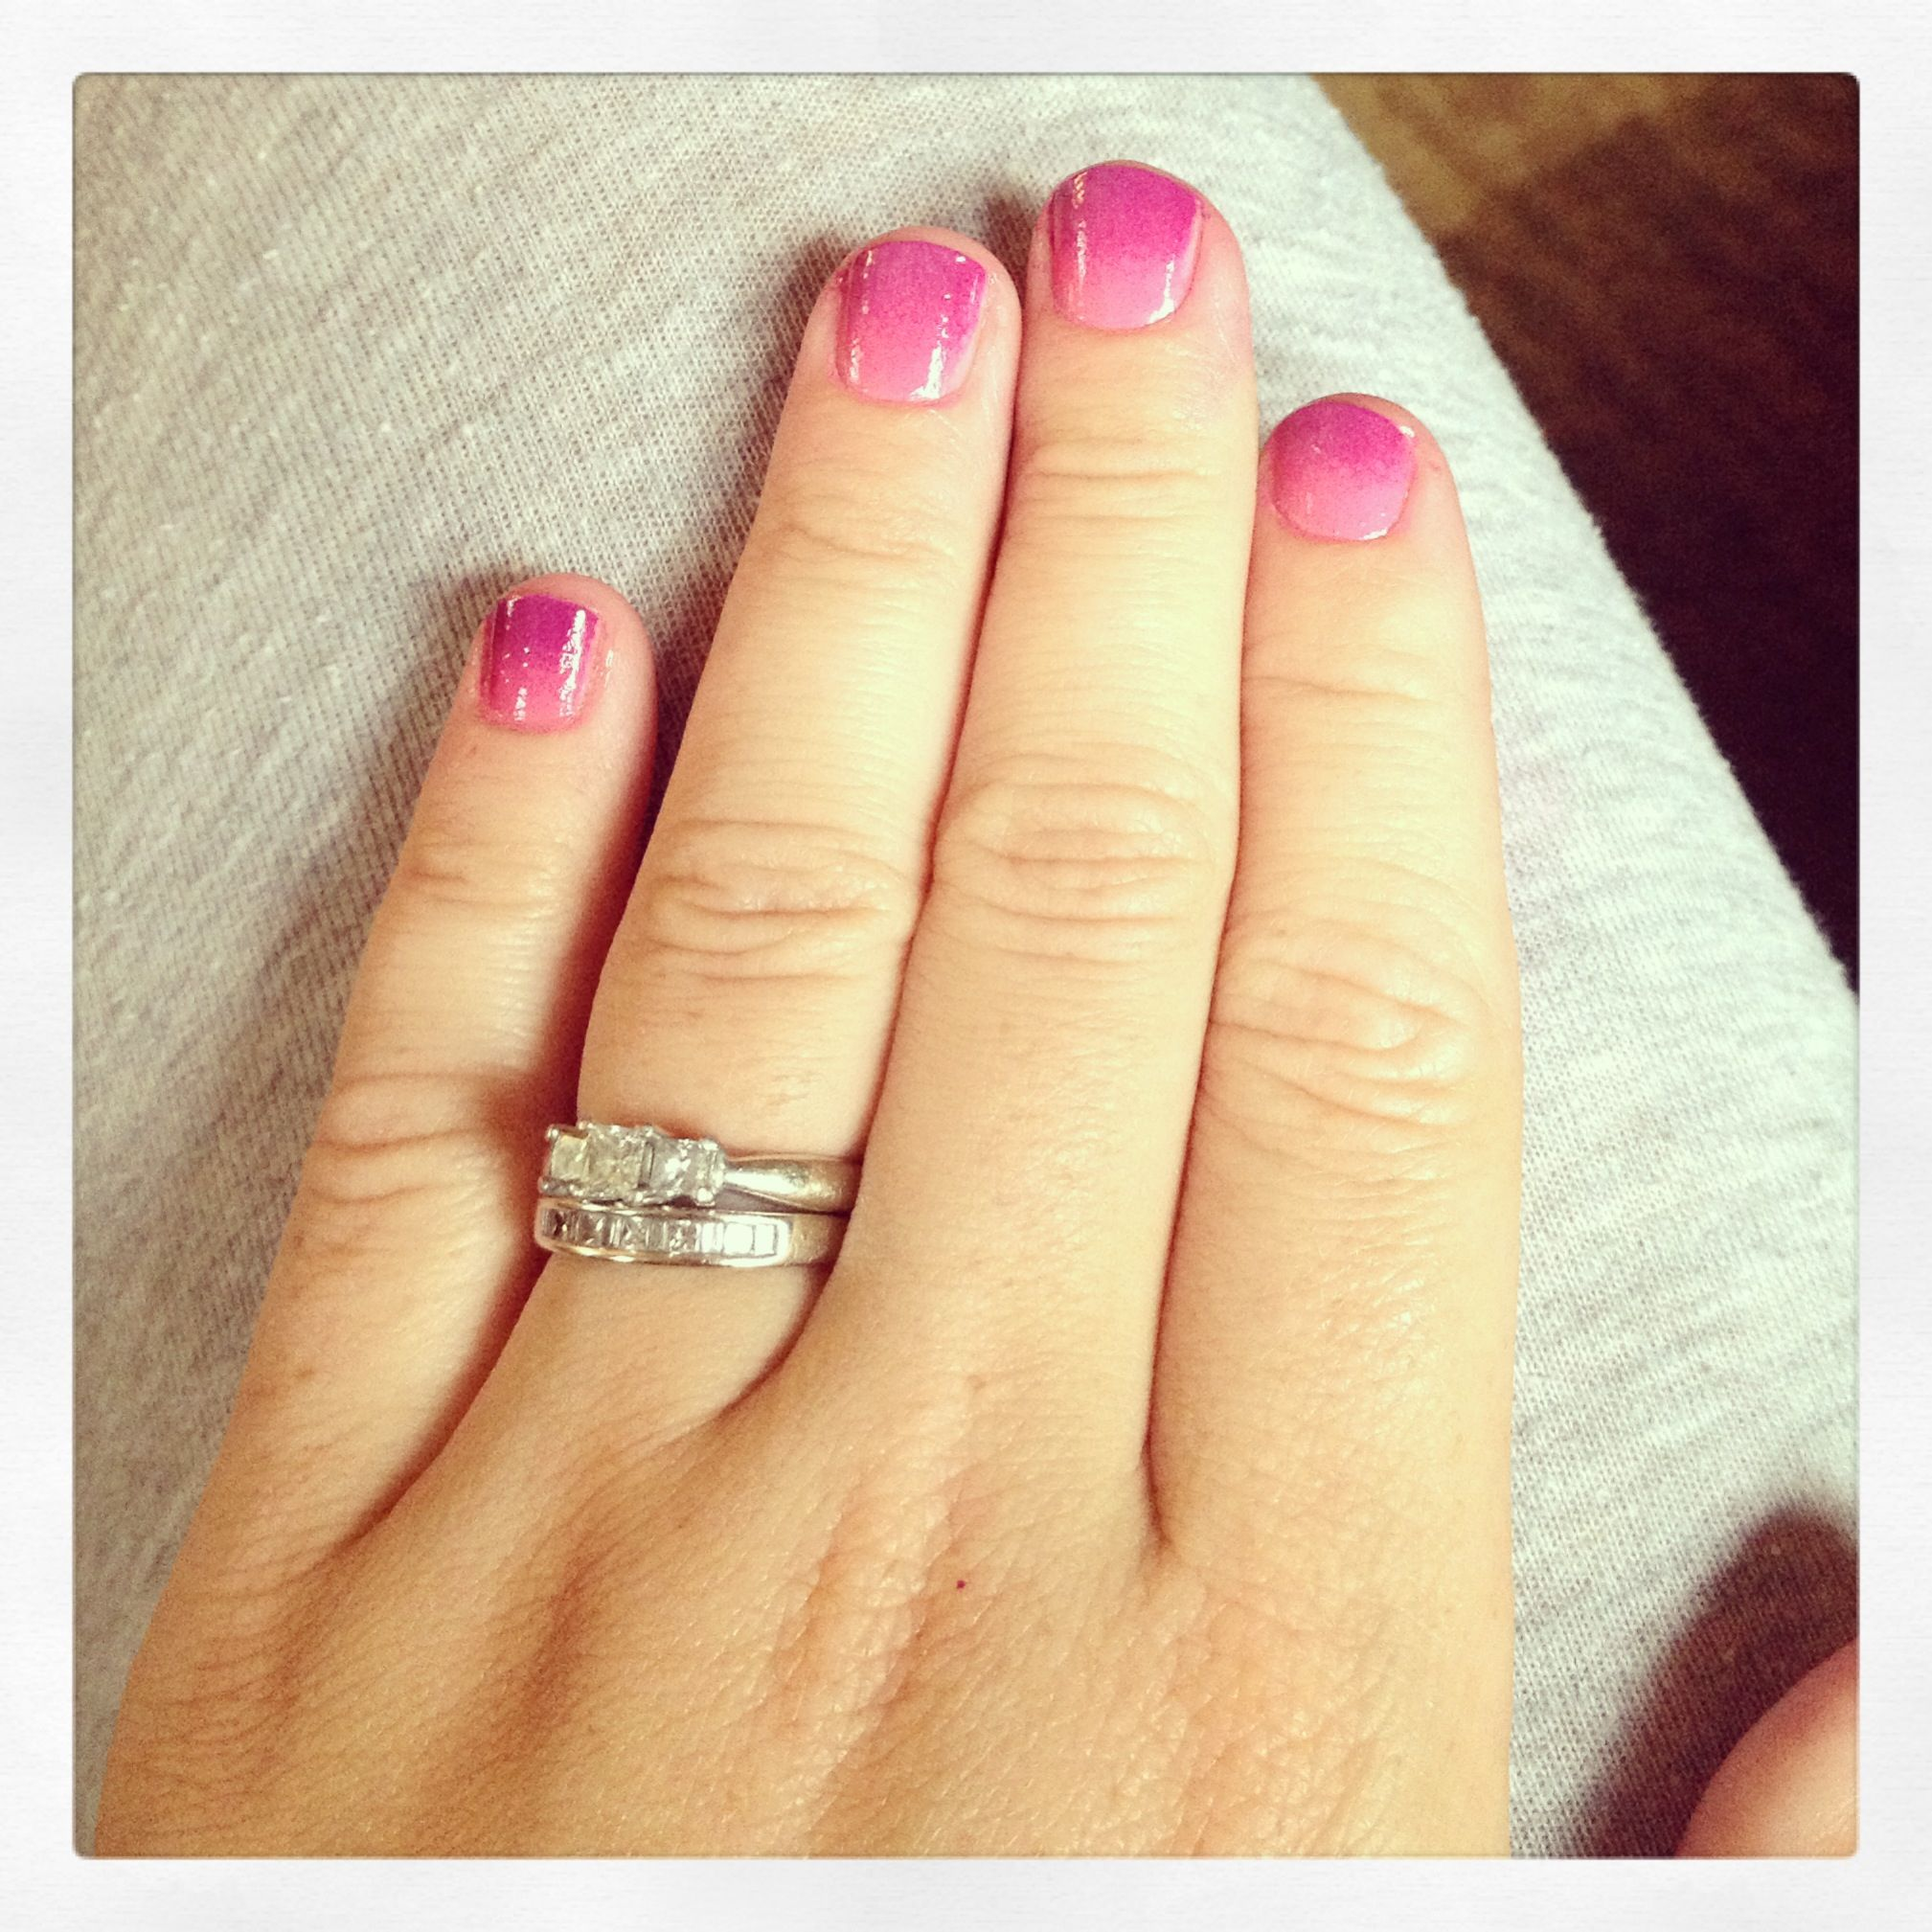 DIY ombré nails (paint stripes from light to dark onto a